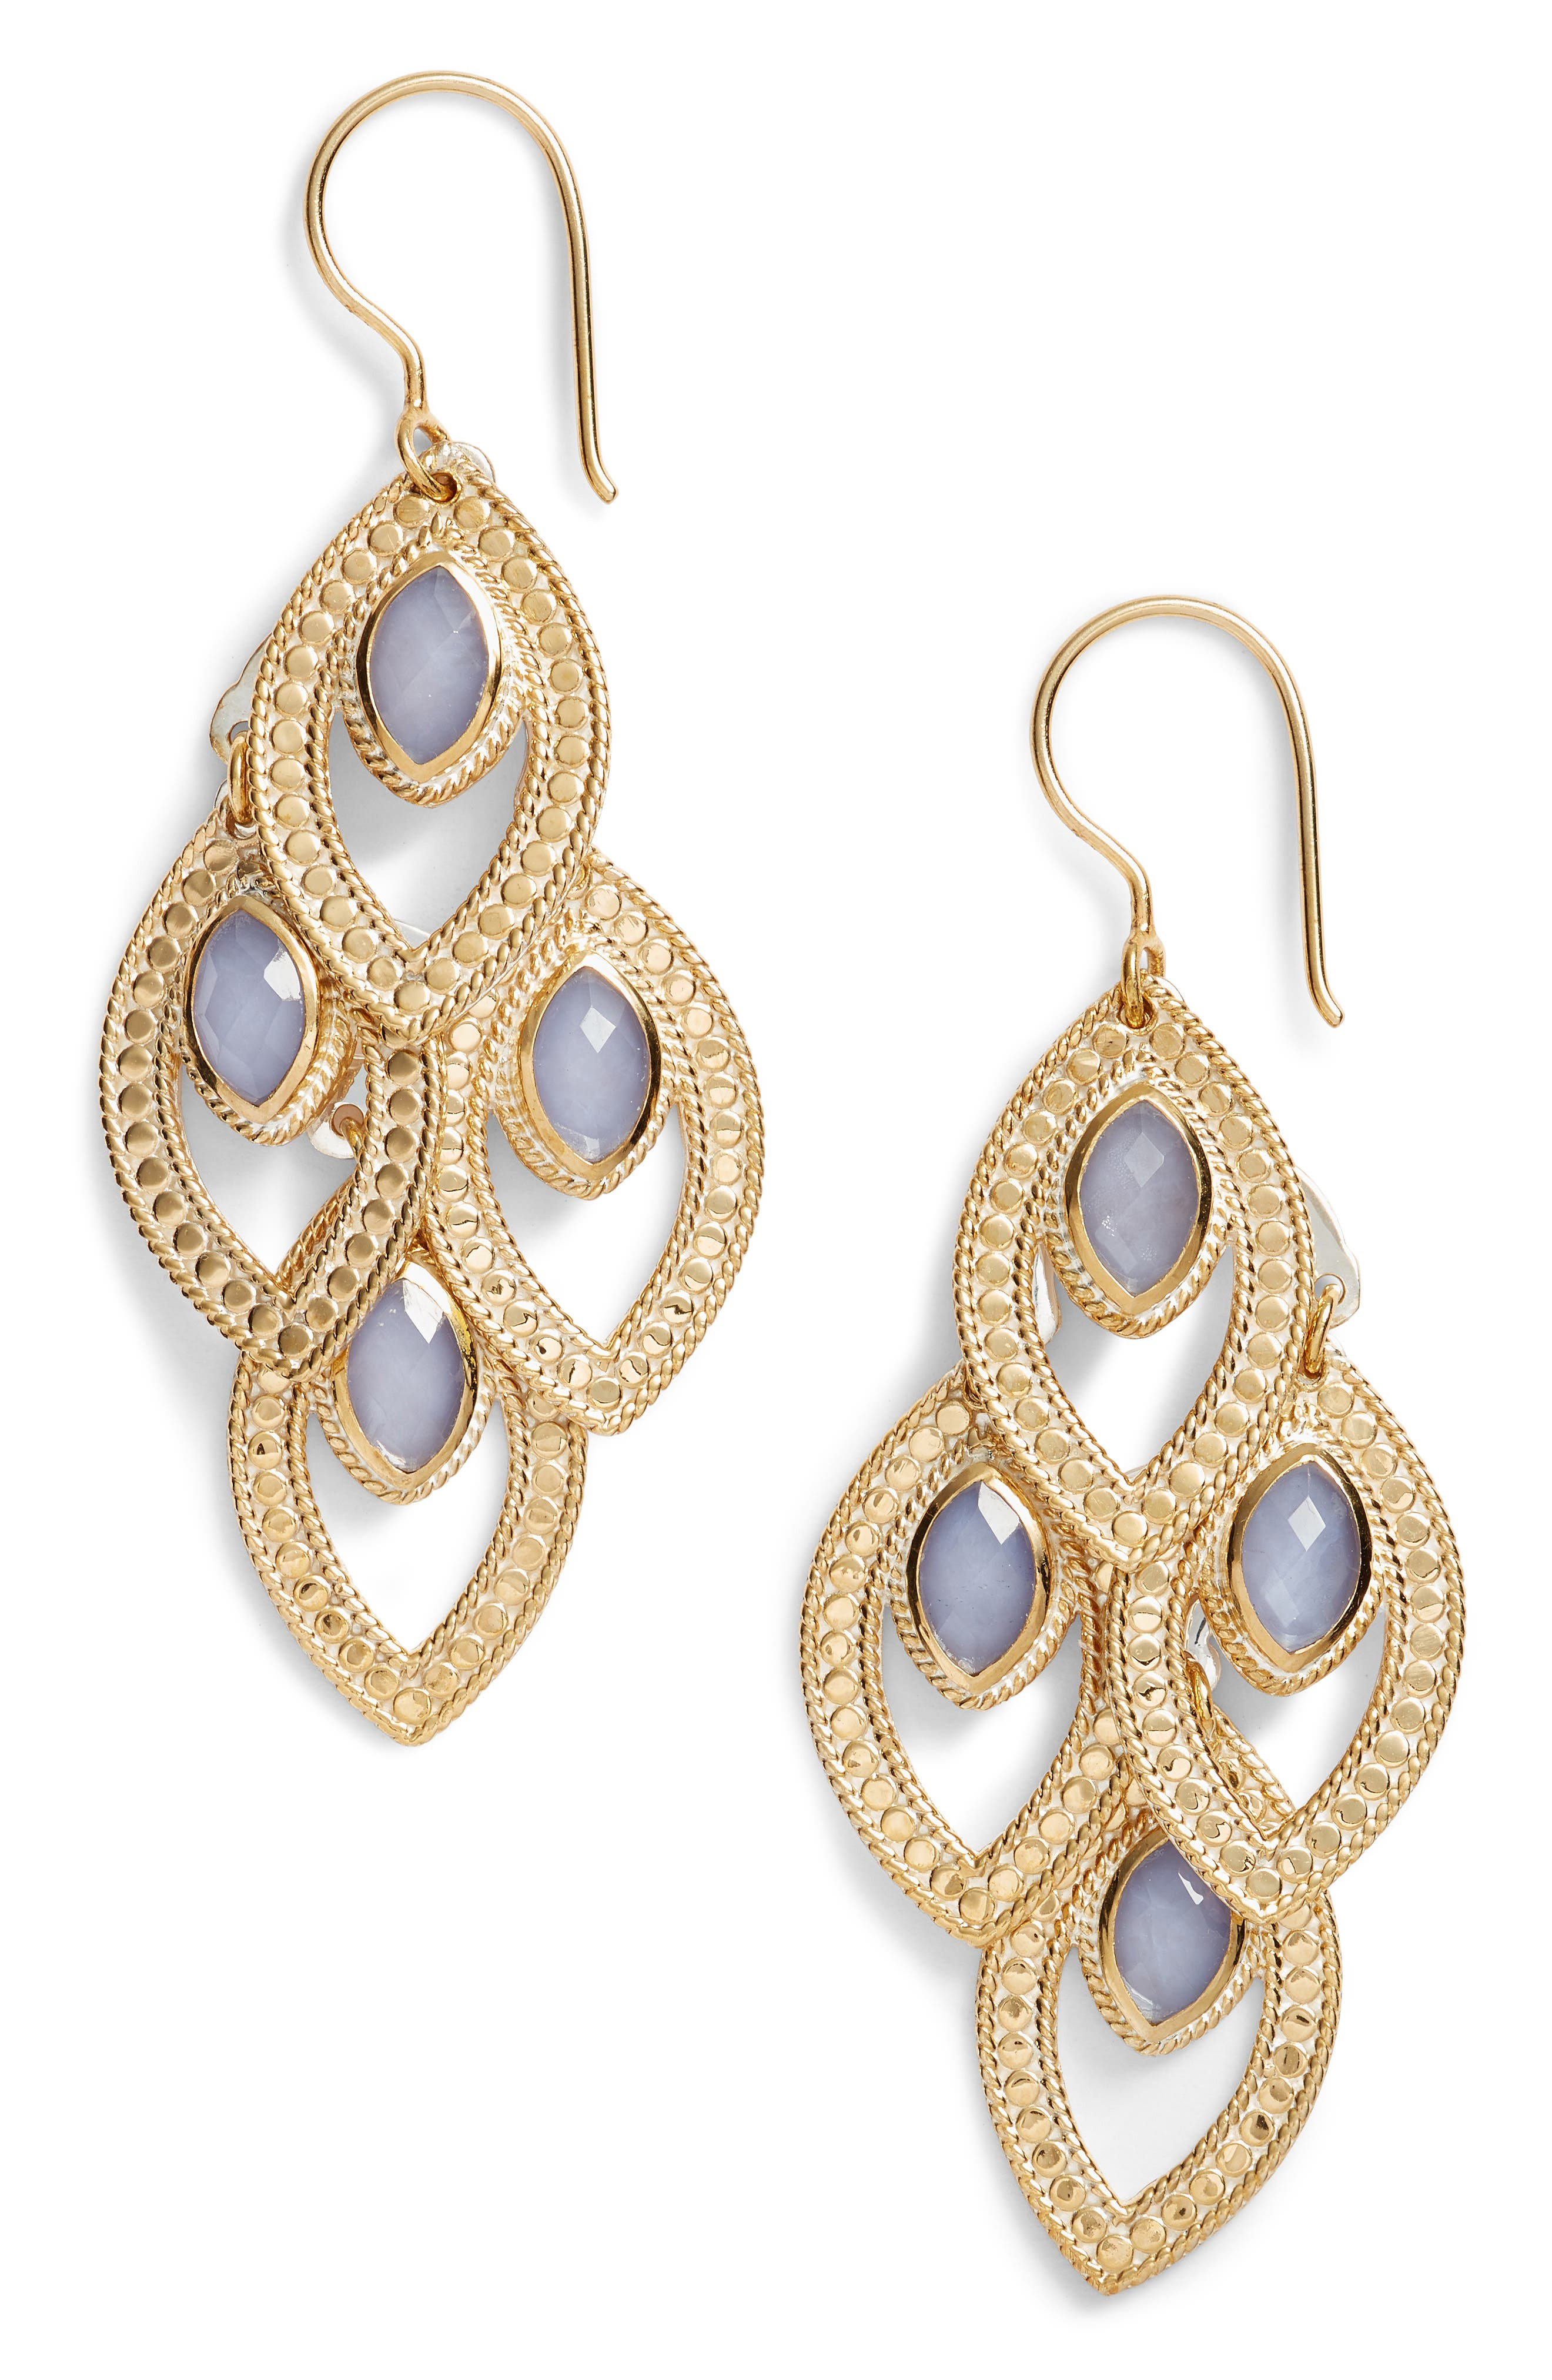 ANNA BECK Chandelier Earrings, Main, color, 400